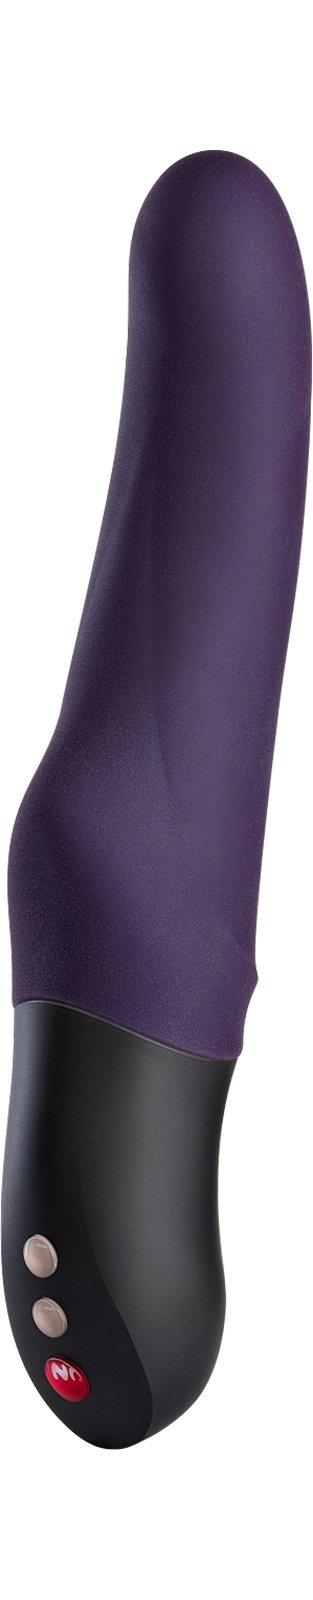 Fun Factory Stronic Eins Pulsator Dark Violet by Fun Factory